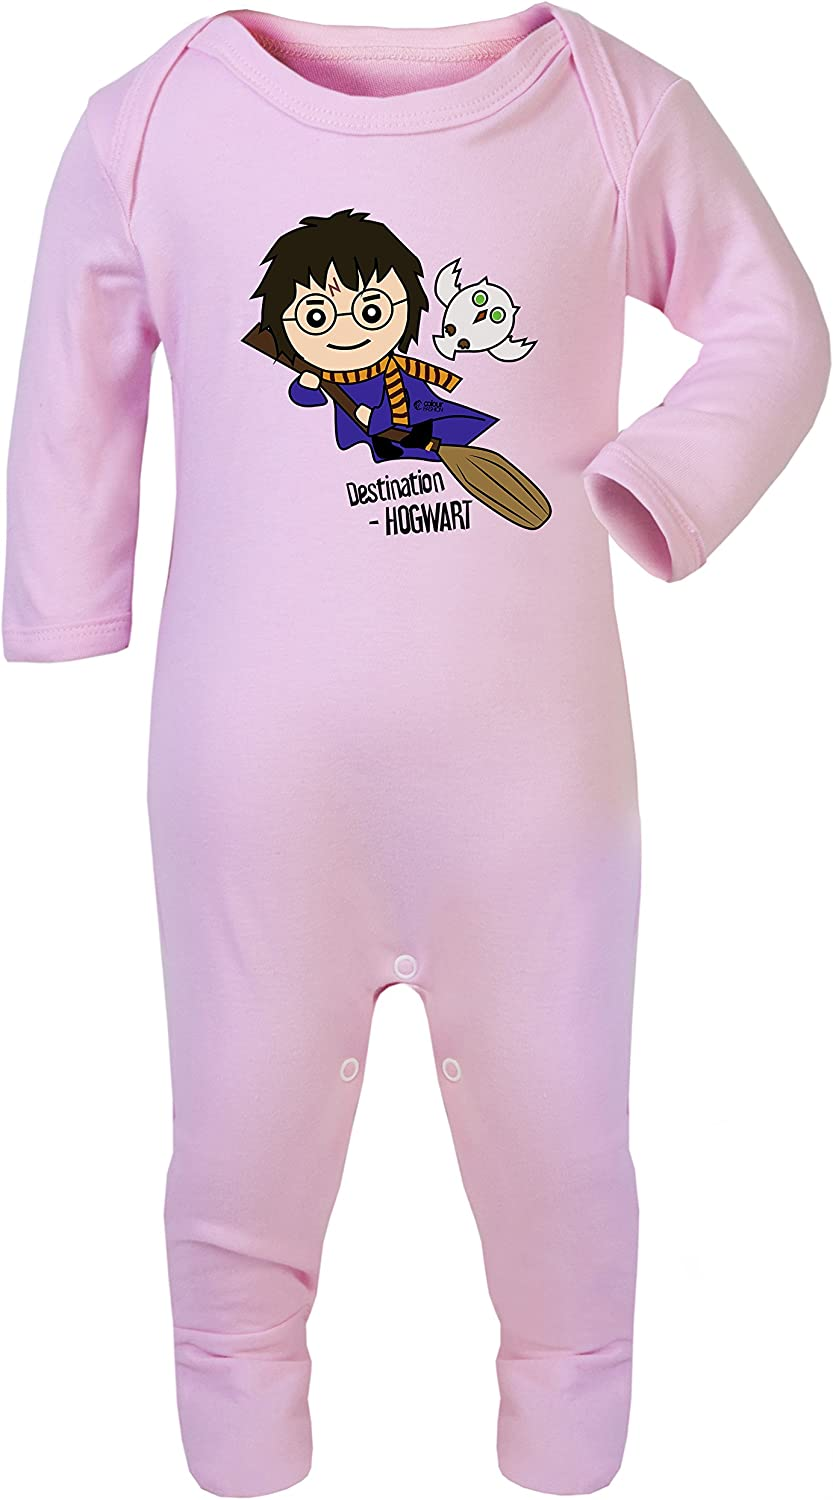 Cheap mail order Max 75% OFF sales Uncanny Harry Potter with Owl Footies Baby Hypoallergeni Pajamas